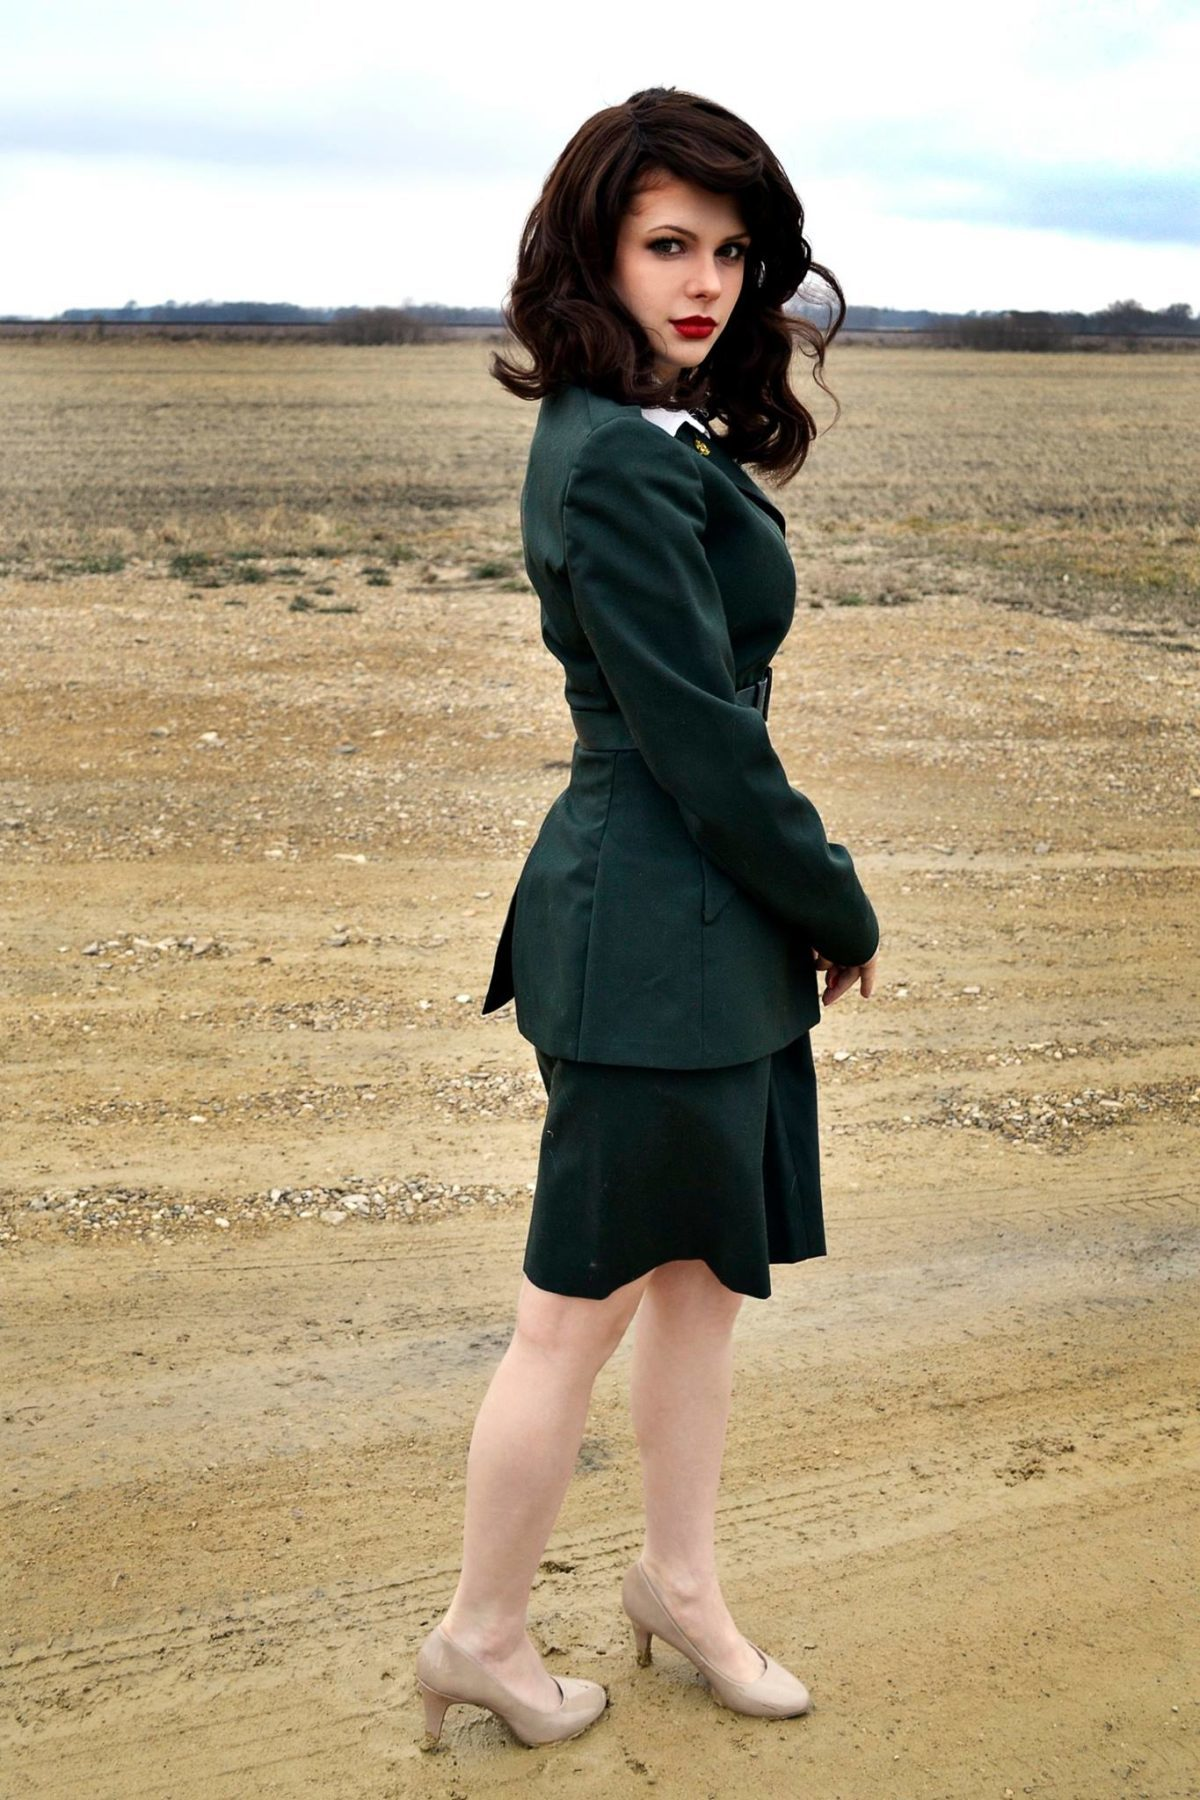 Peggy Carter z Marvel Cinematic Universe